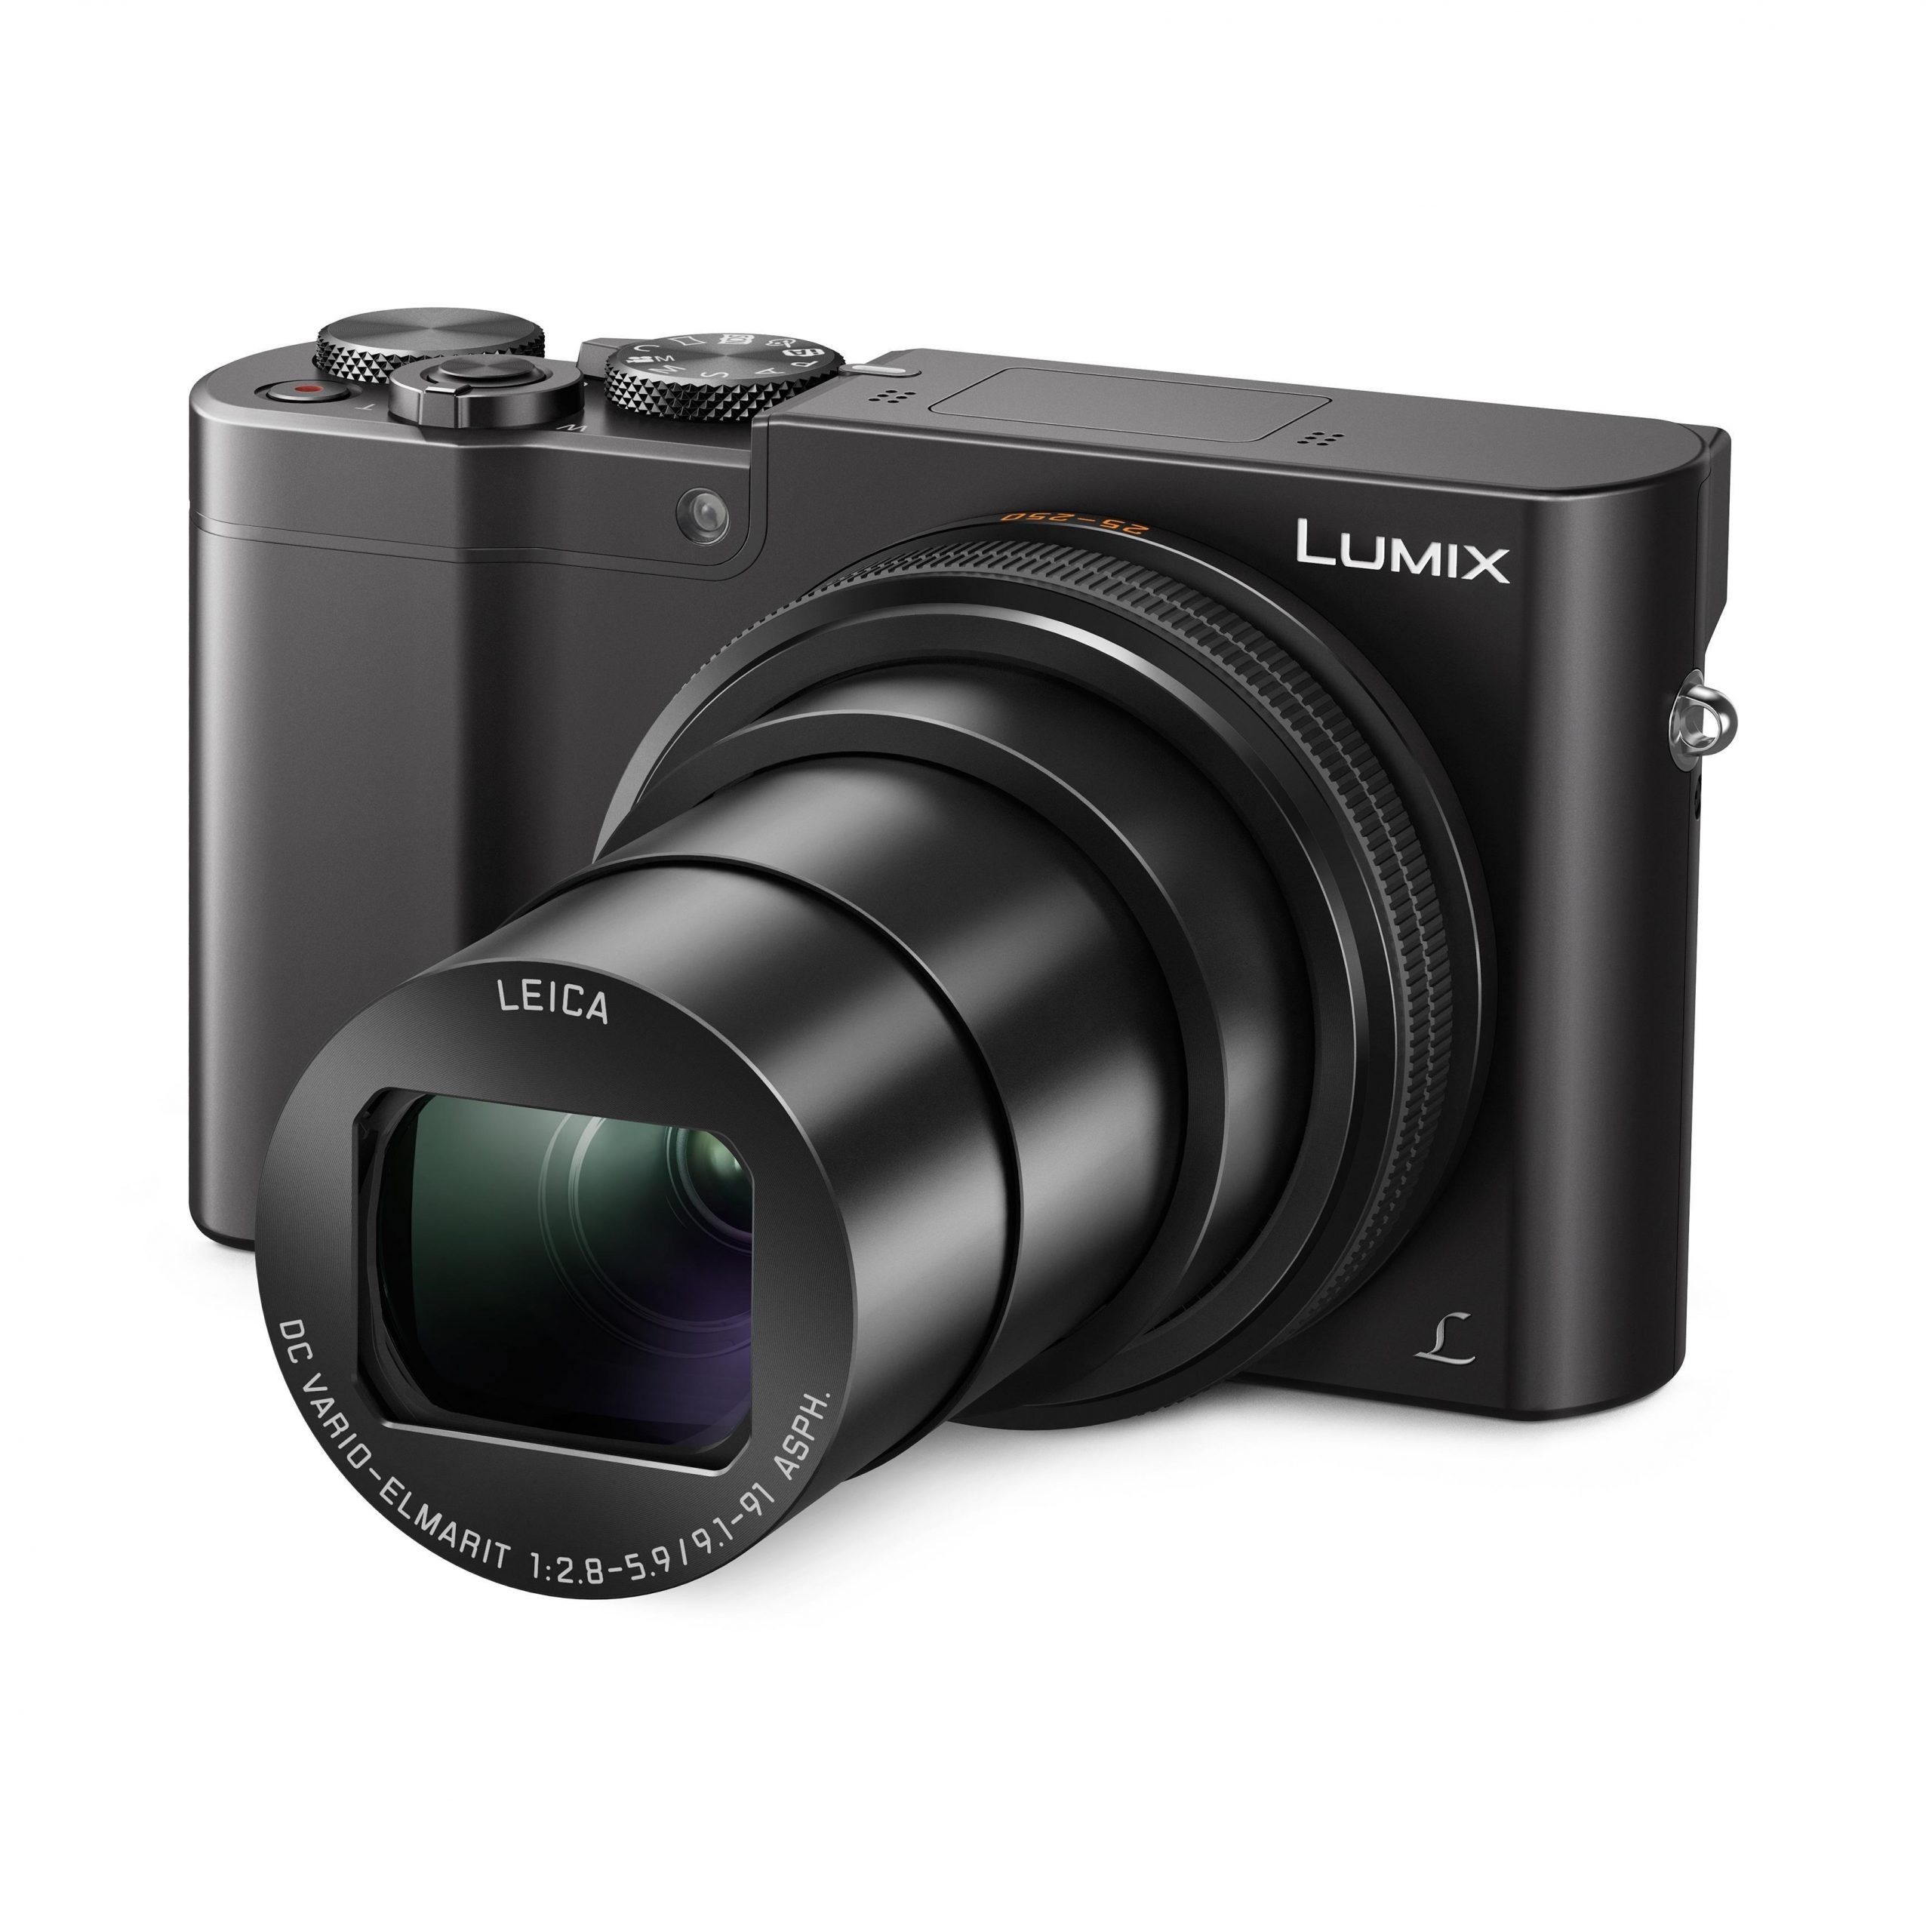 Panasonic Lumix TZ110 Compact Digital Camera [4K Video] (Black)